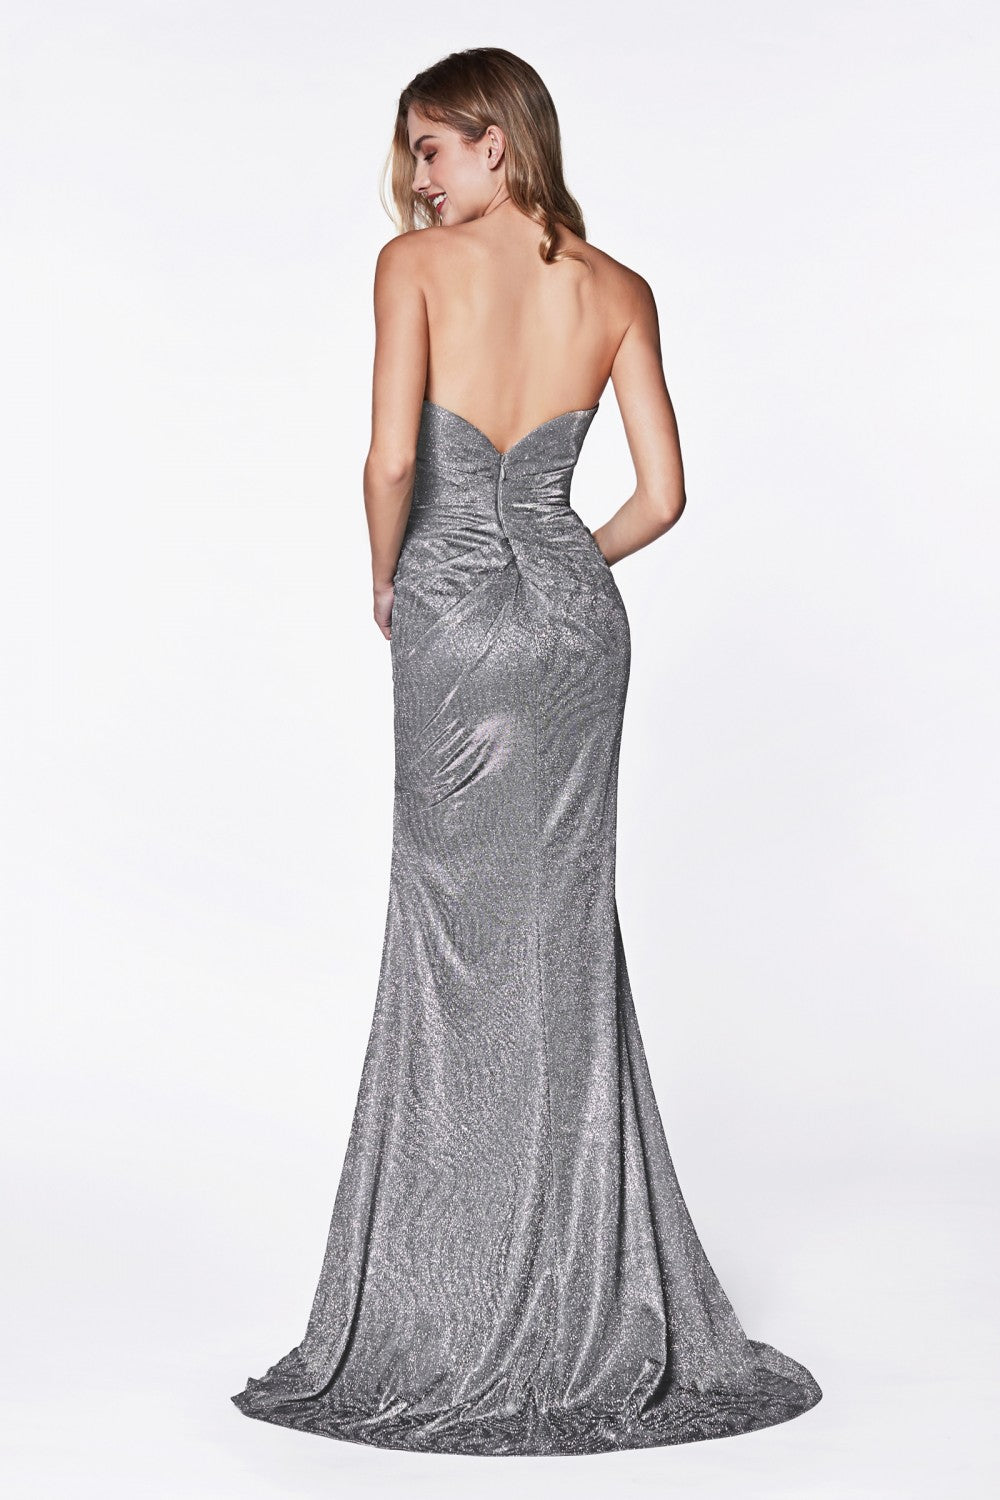 Strapless Ruched Sparkle Dress With Sweetheart Neckline And Leg Slit